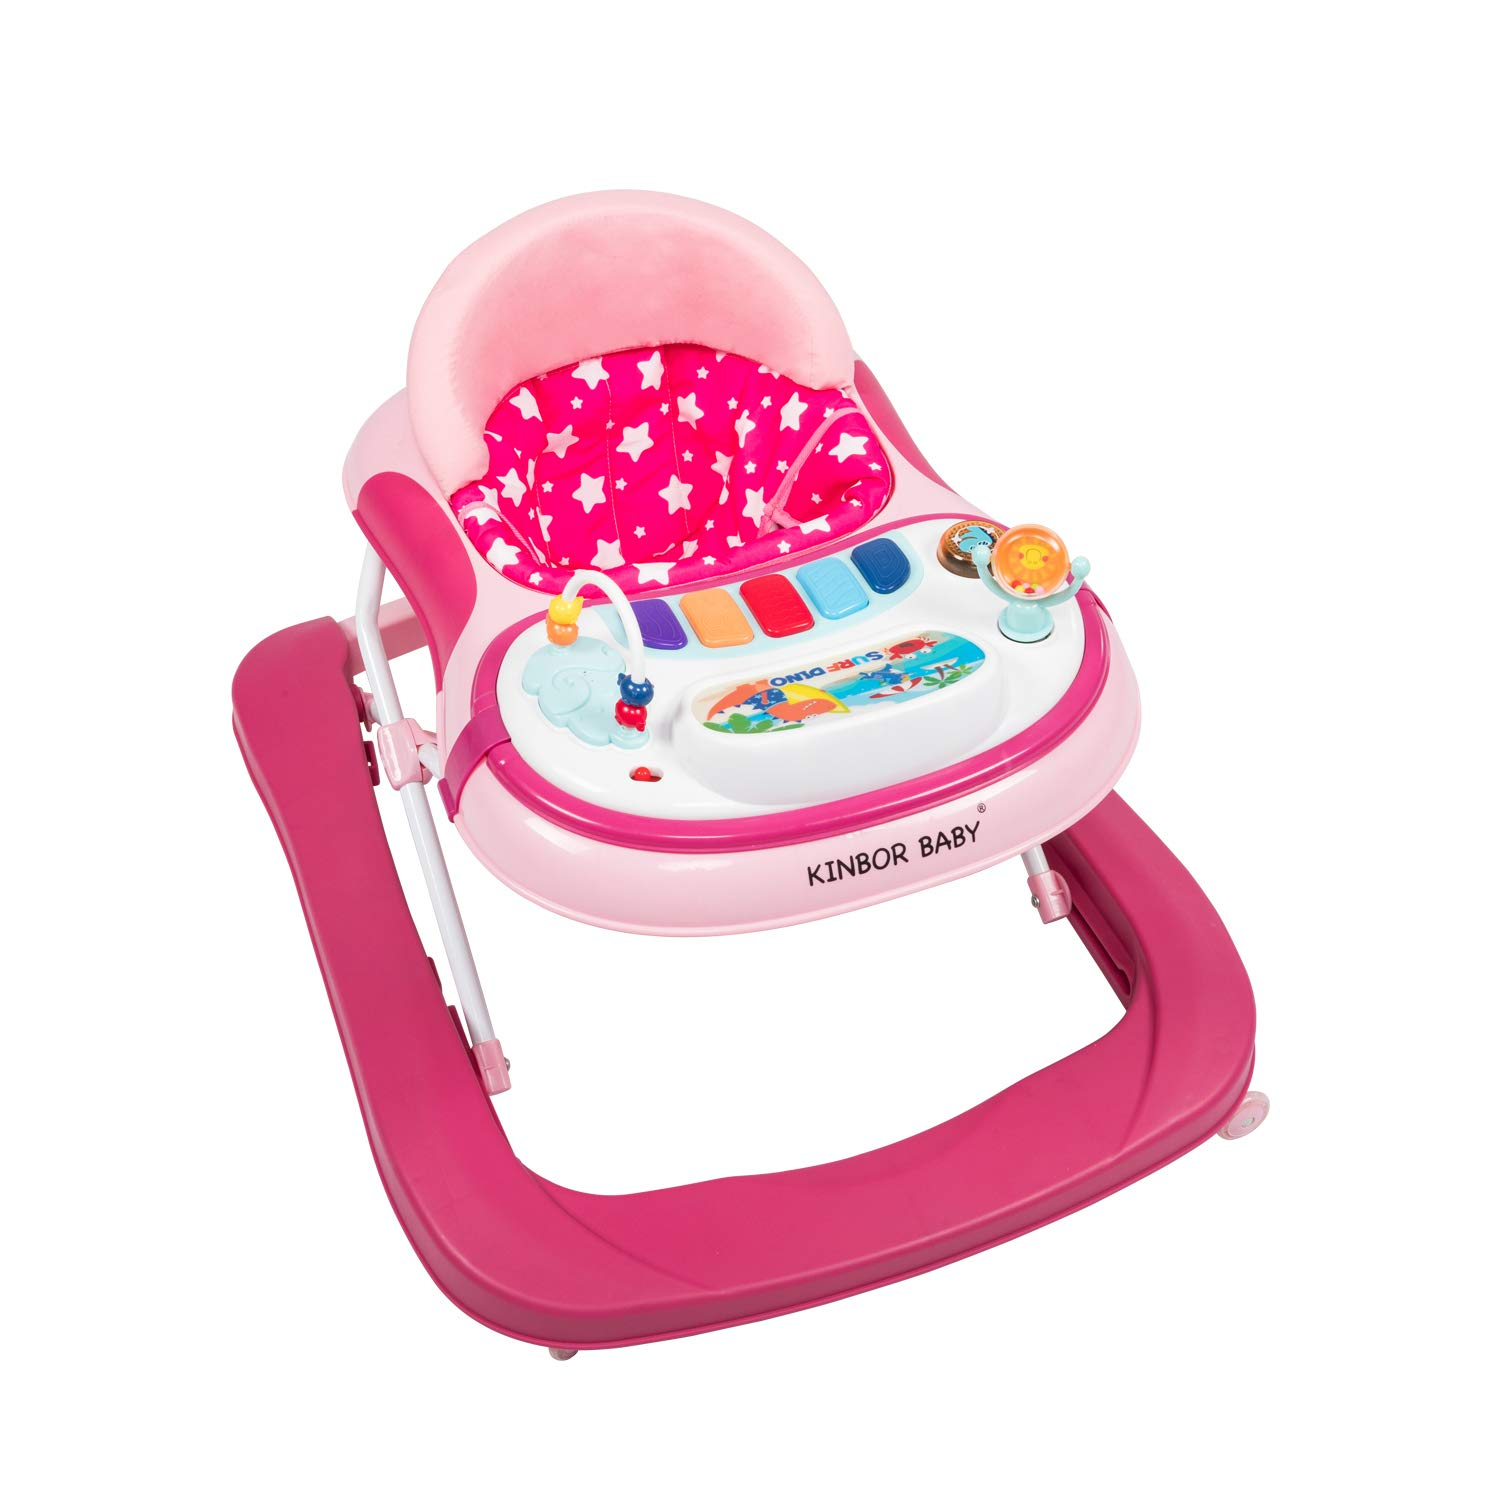 Kinbor Baby 2-in-1 Baby Sit-to –Stand Learning Walker, Seated or Push-Behind Position, Foldable, Fun Toys and Activities for Baby Girl or boy